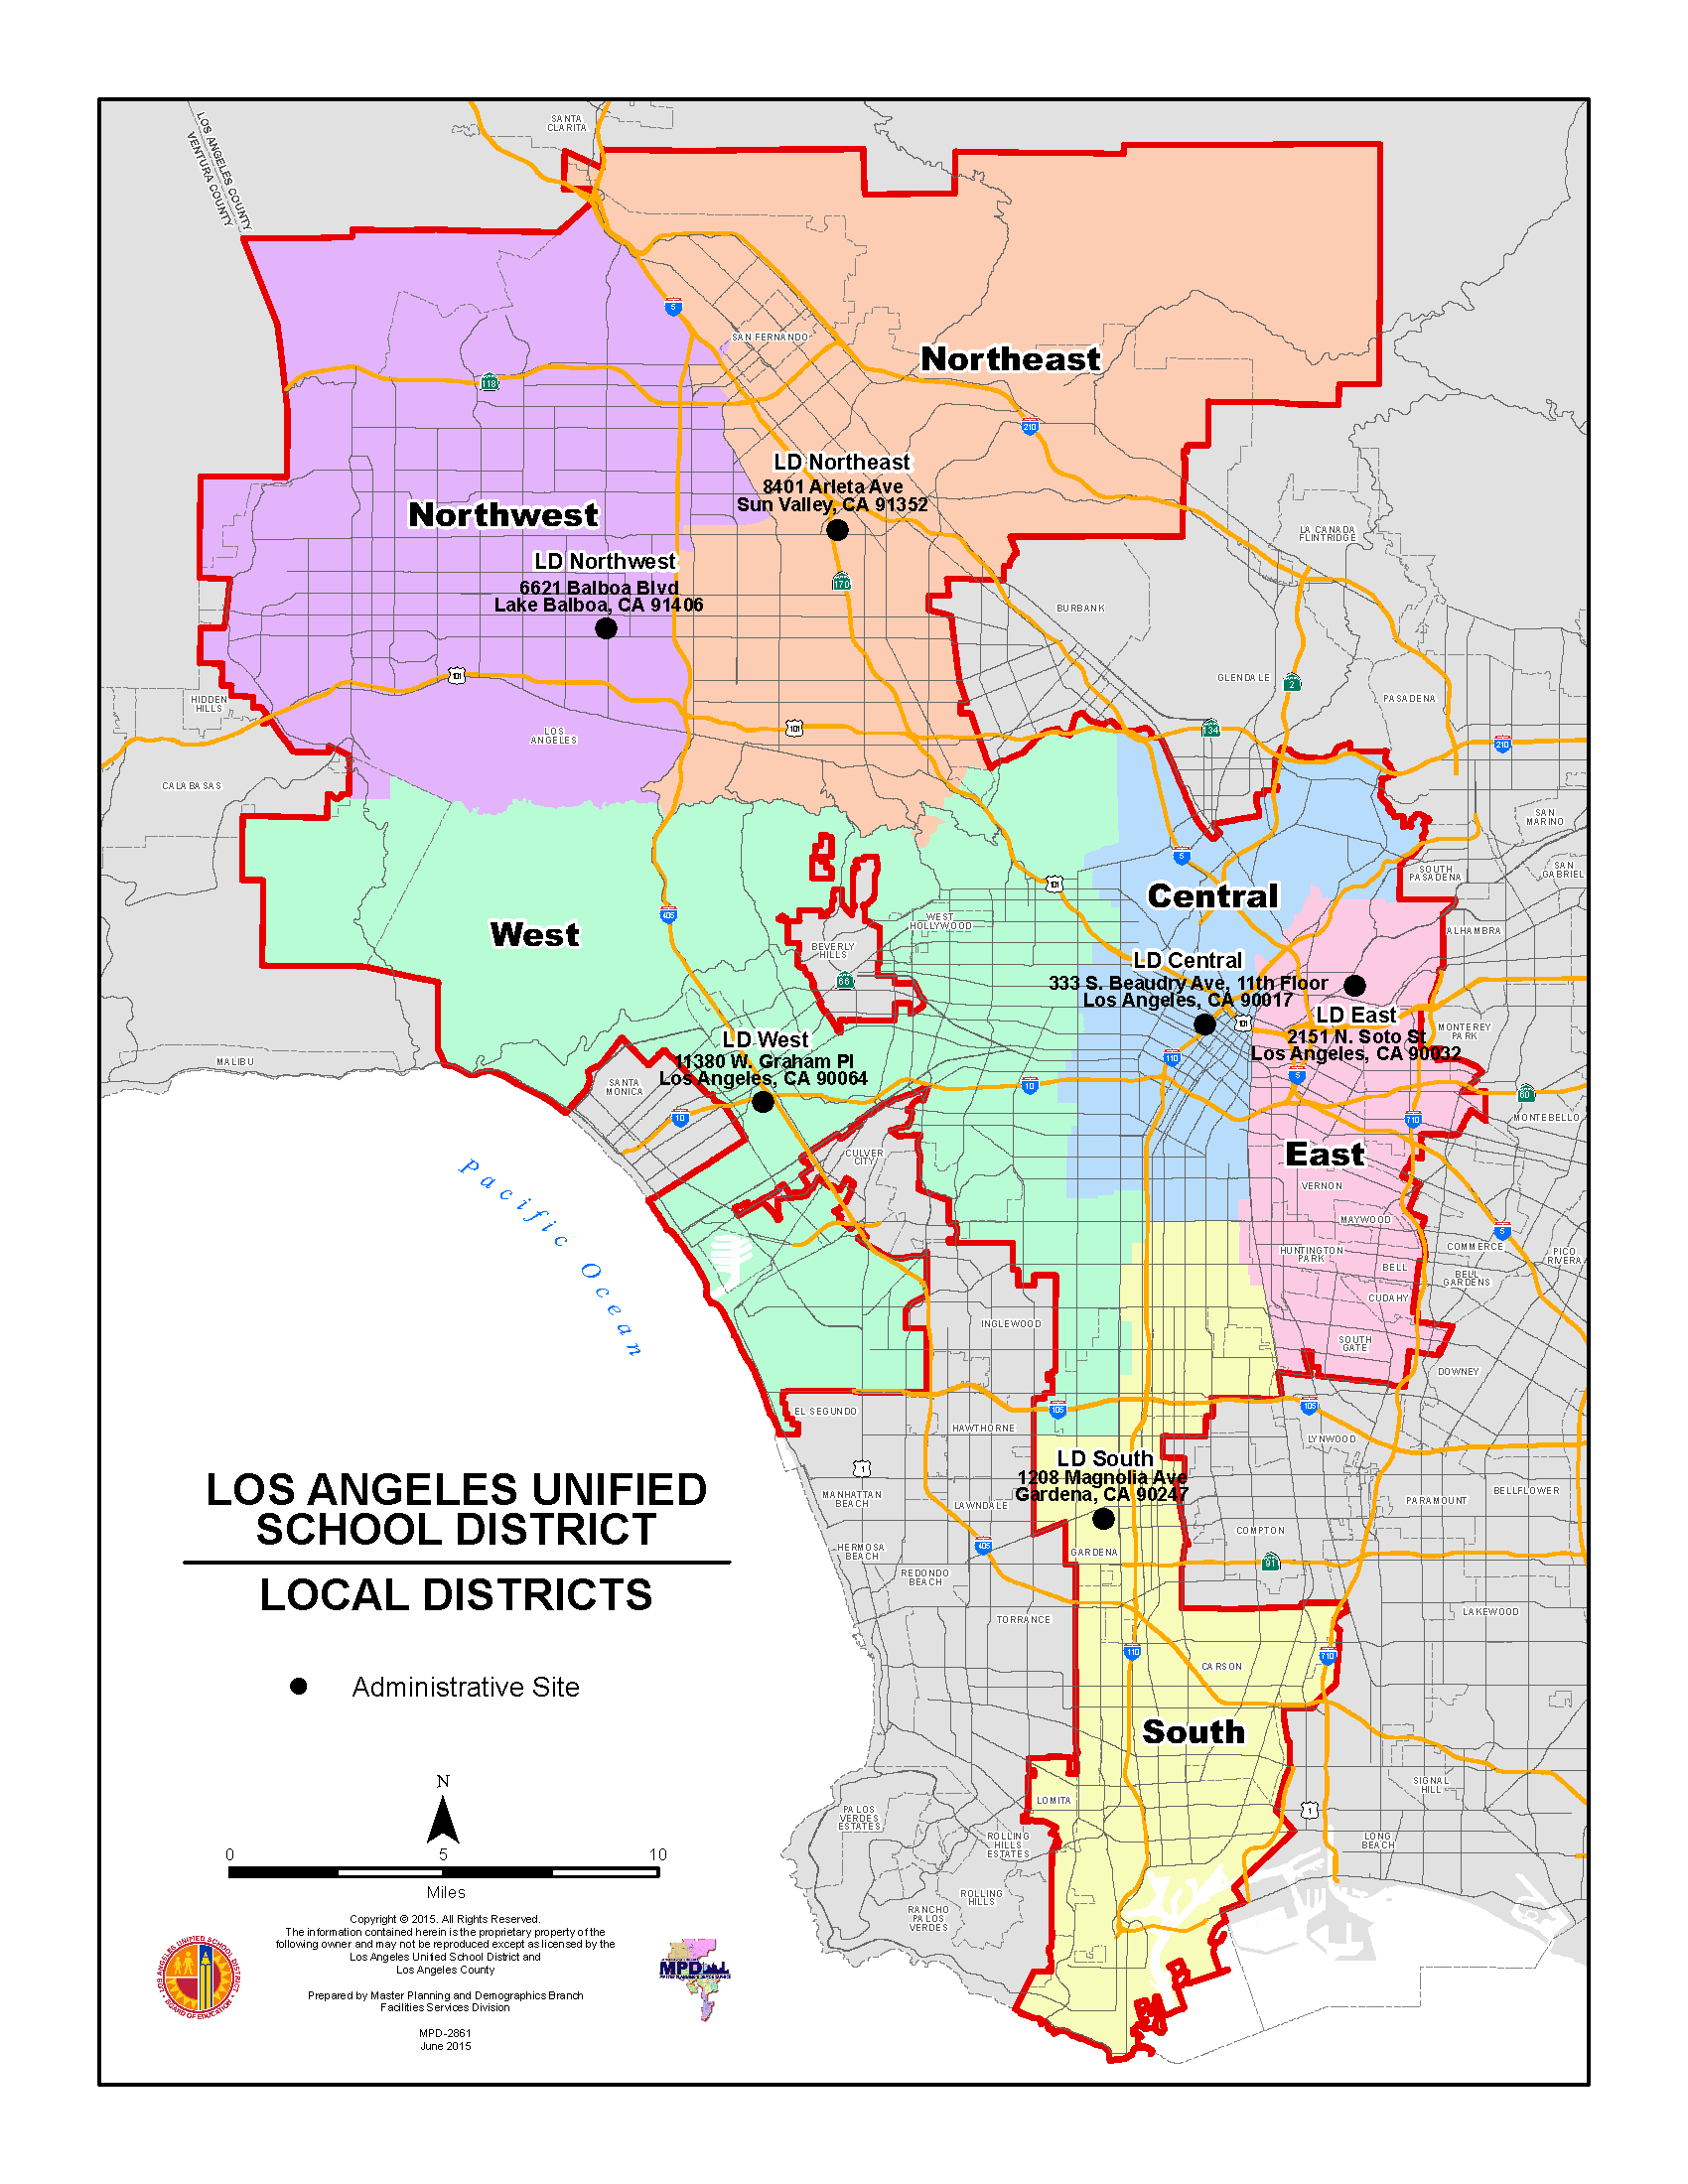 Lausd Maps / Local District Maps 2015 - 2016 - California School Districts Map